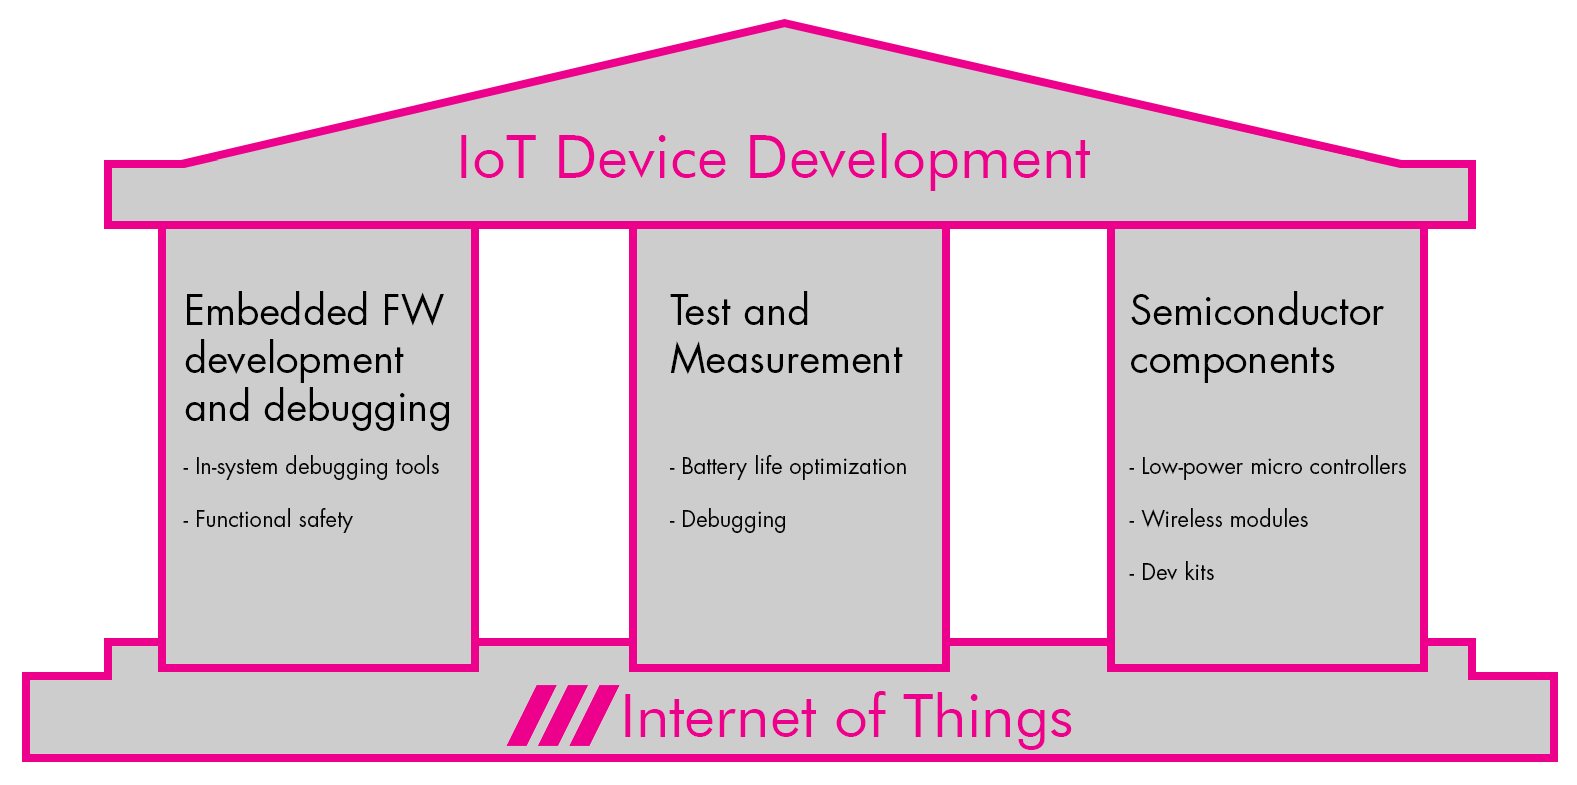 CControls IoT - IoT Device Development